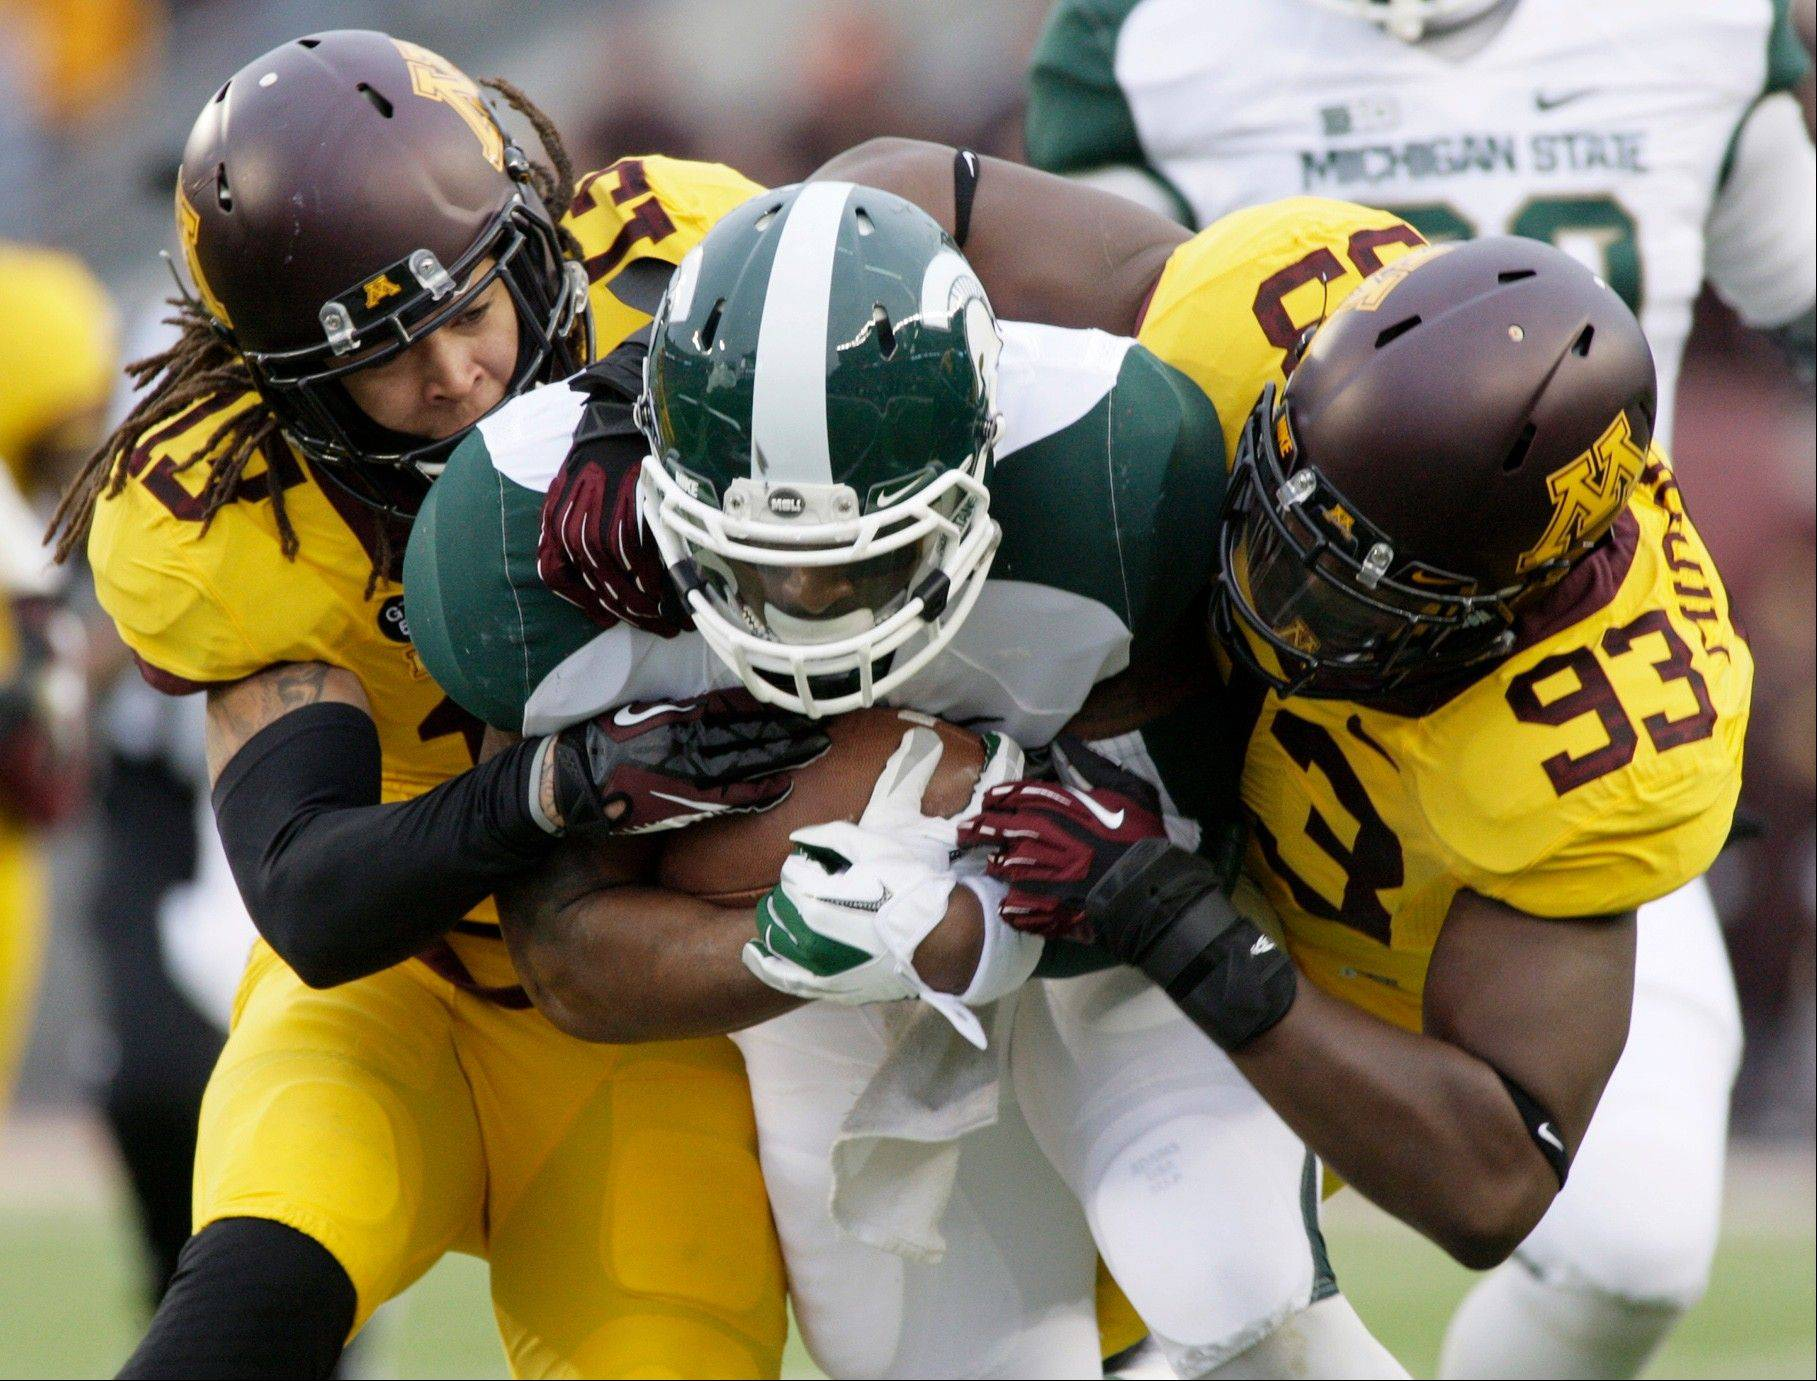 Michigan State beats Minnesota 26-10 for bowl bid